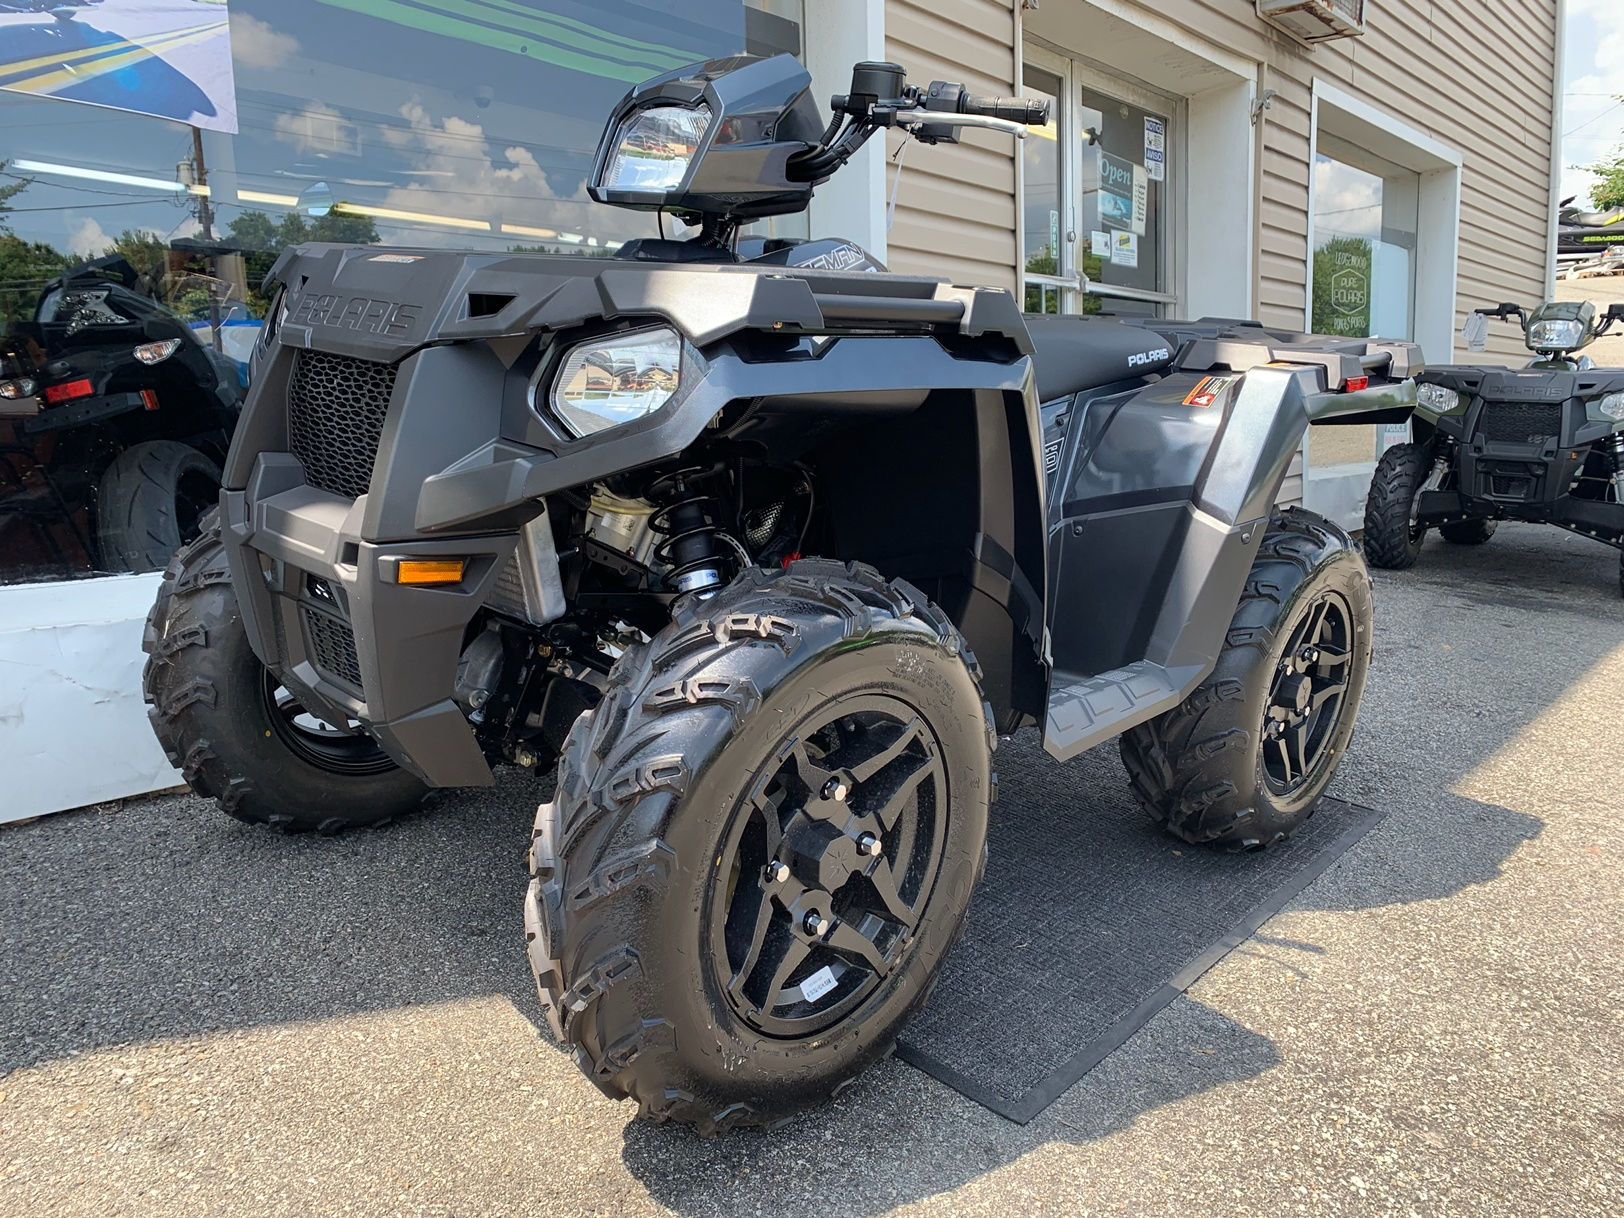 Ledgewood Powersports Inc  is located in Ledgewood, NJ  Shop